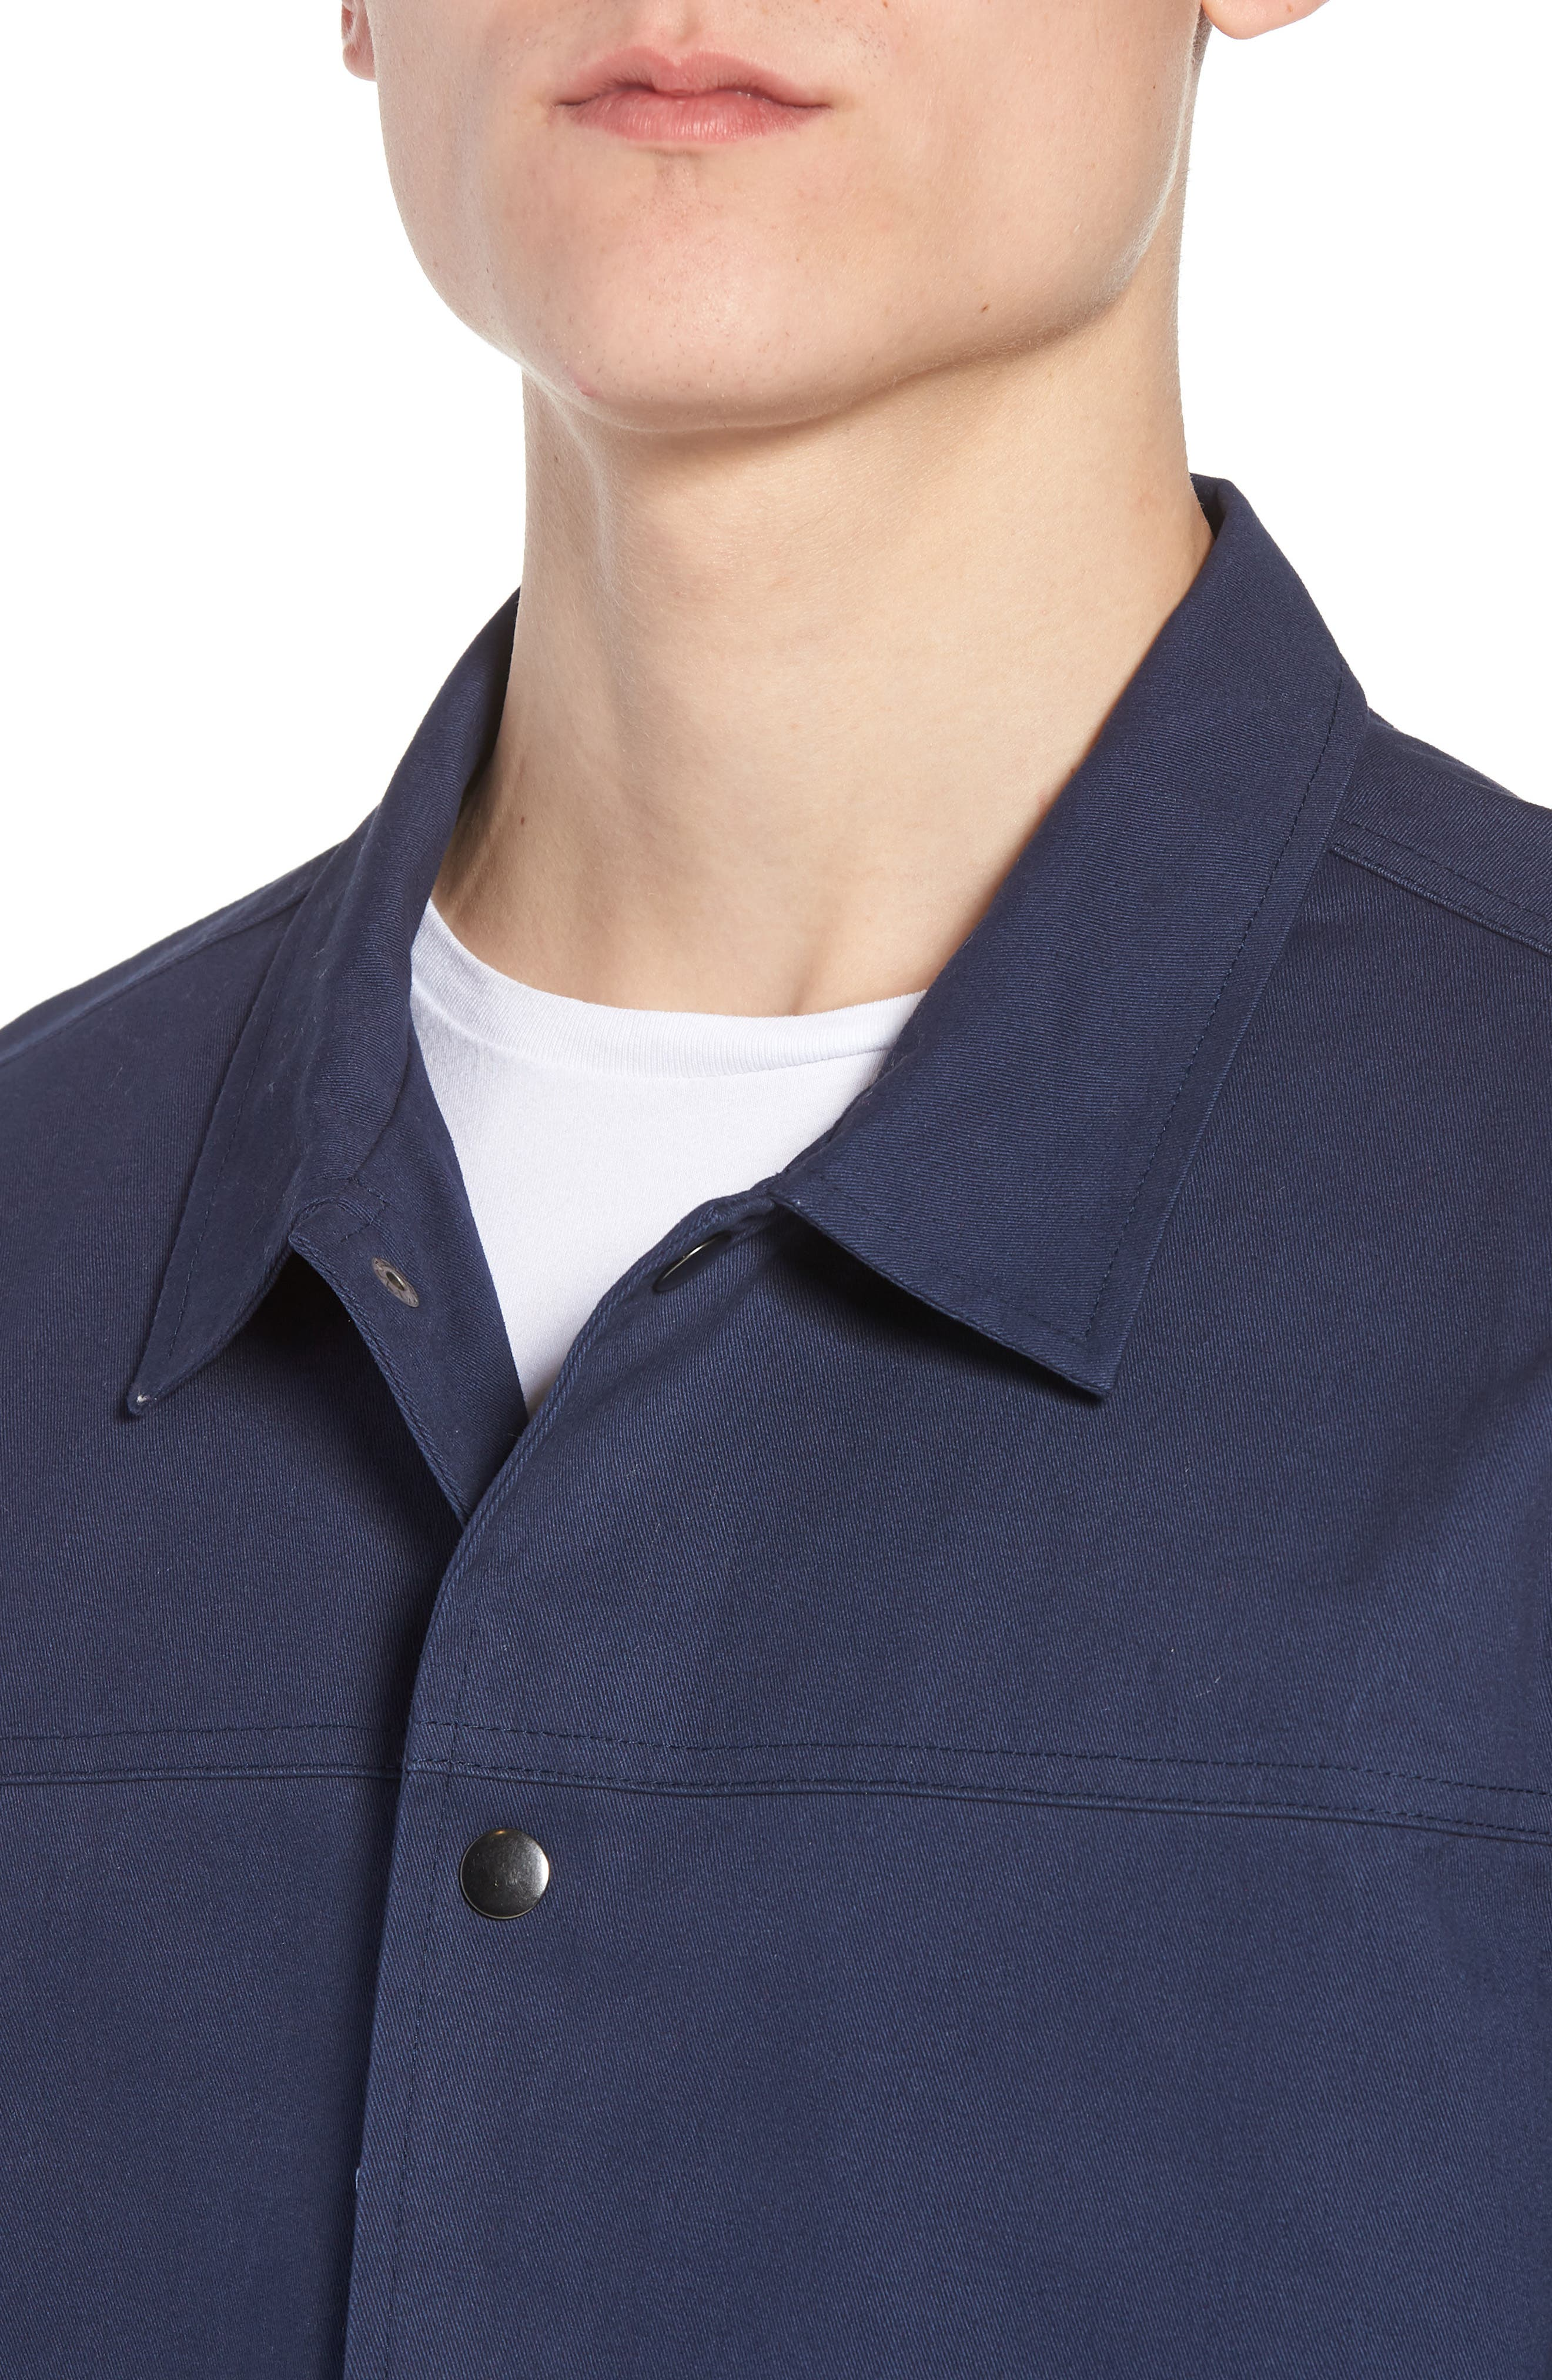 Snap Front Coach's Jacket,                             Alternate thumbnail 4, color,                             Navy Iris